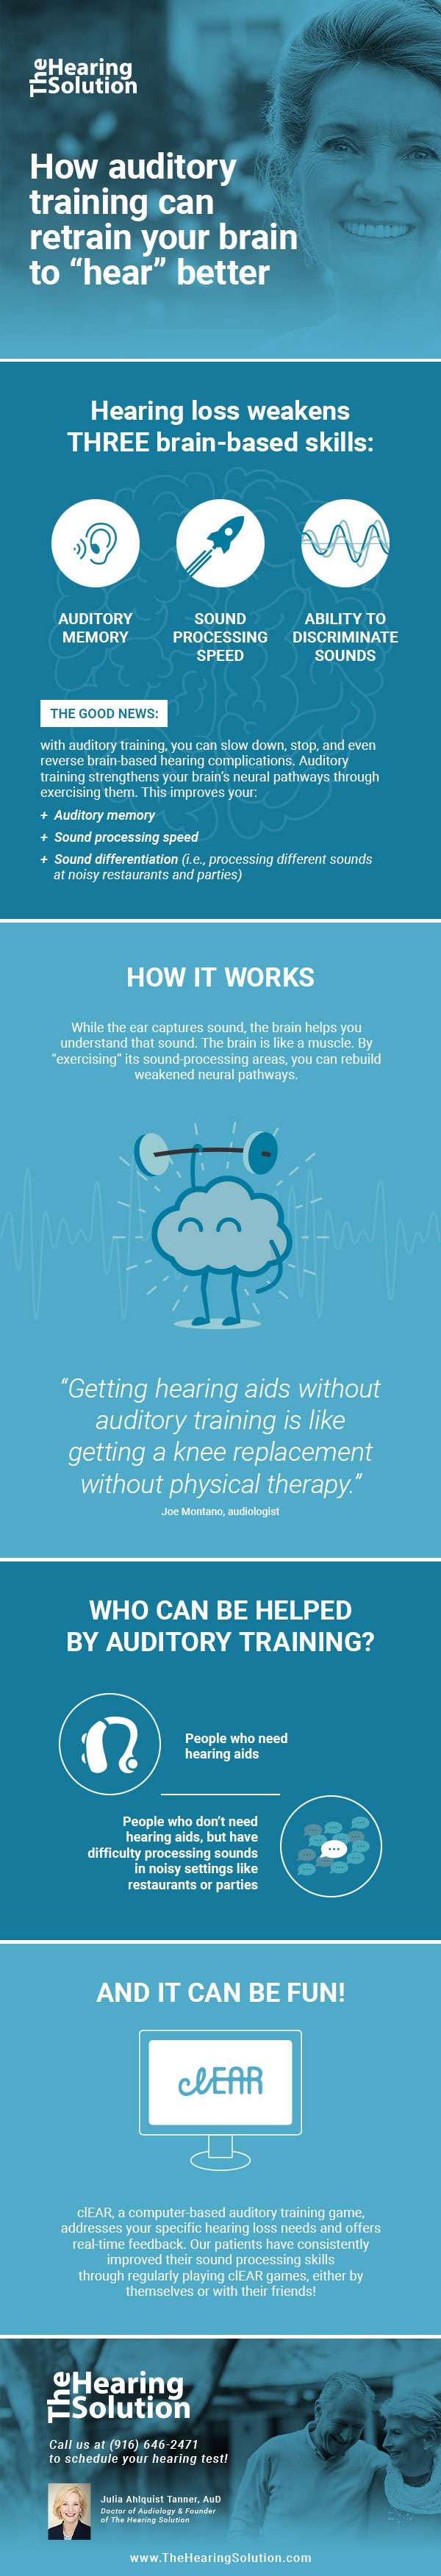 Auditory Training - Retrain Your Brain to Hear Better - Infographic